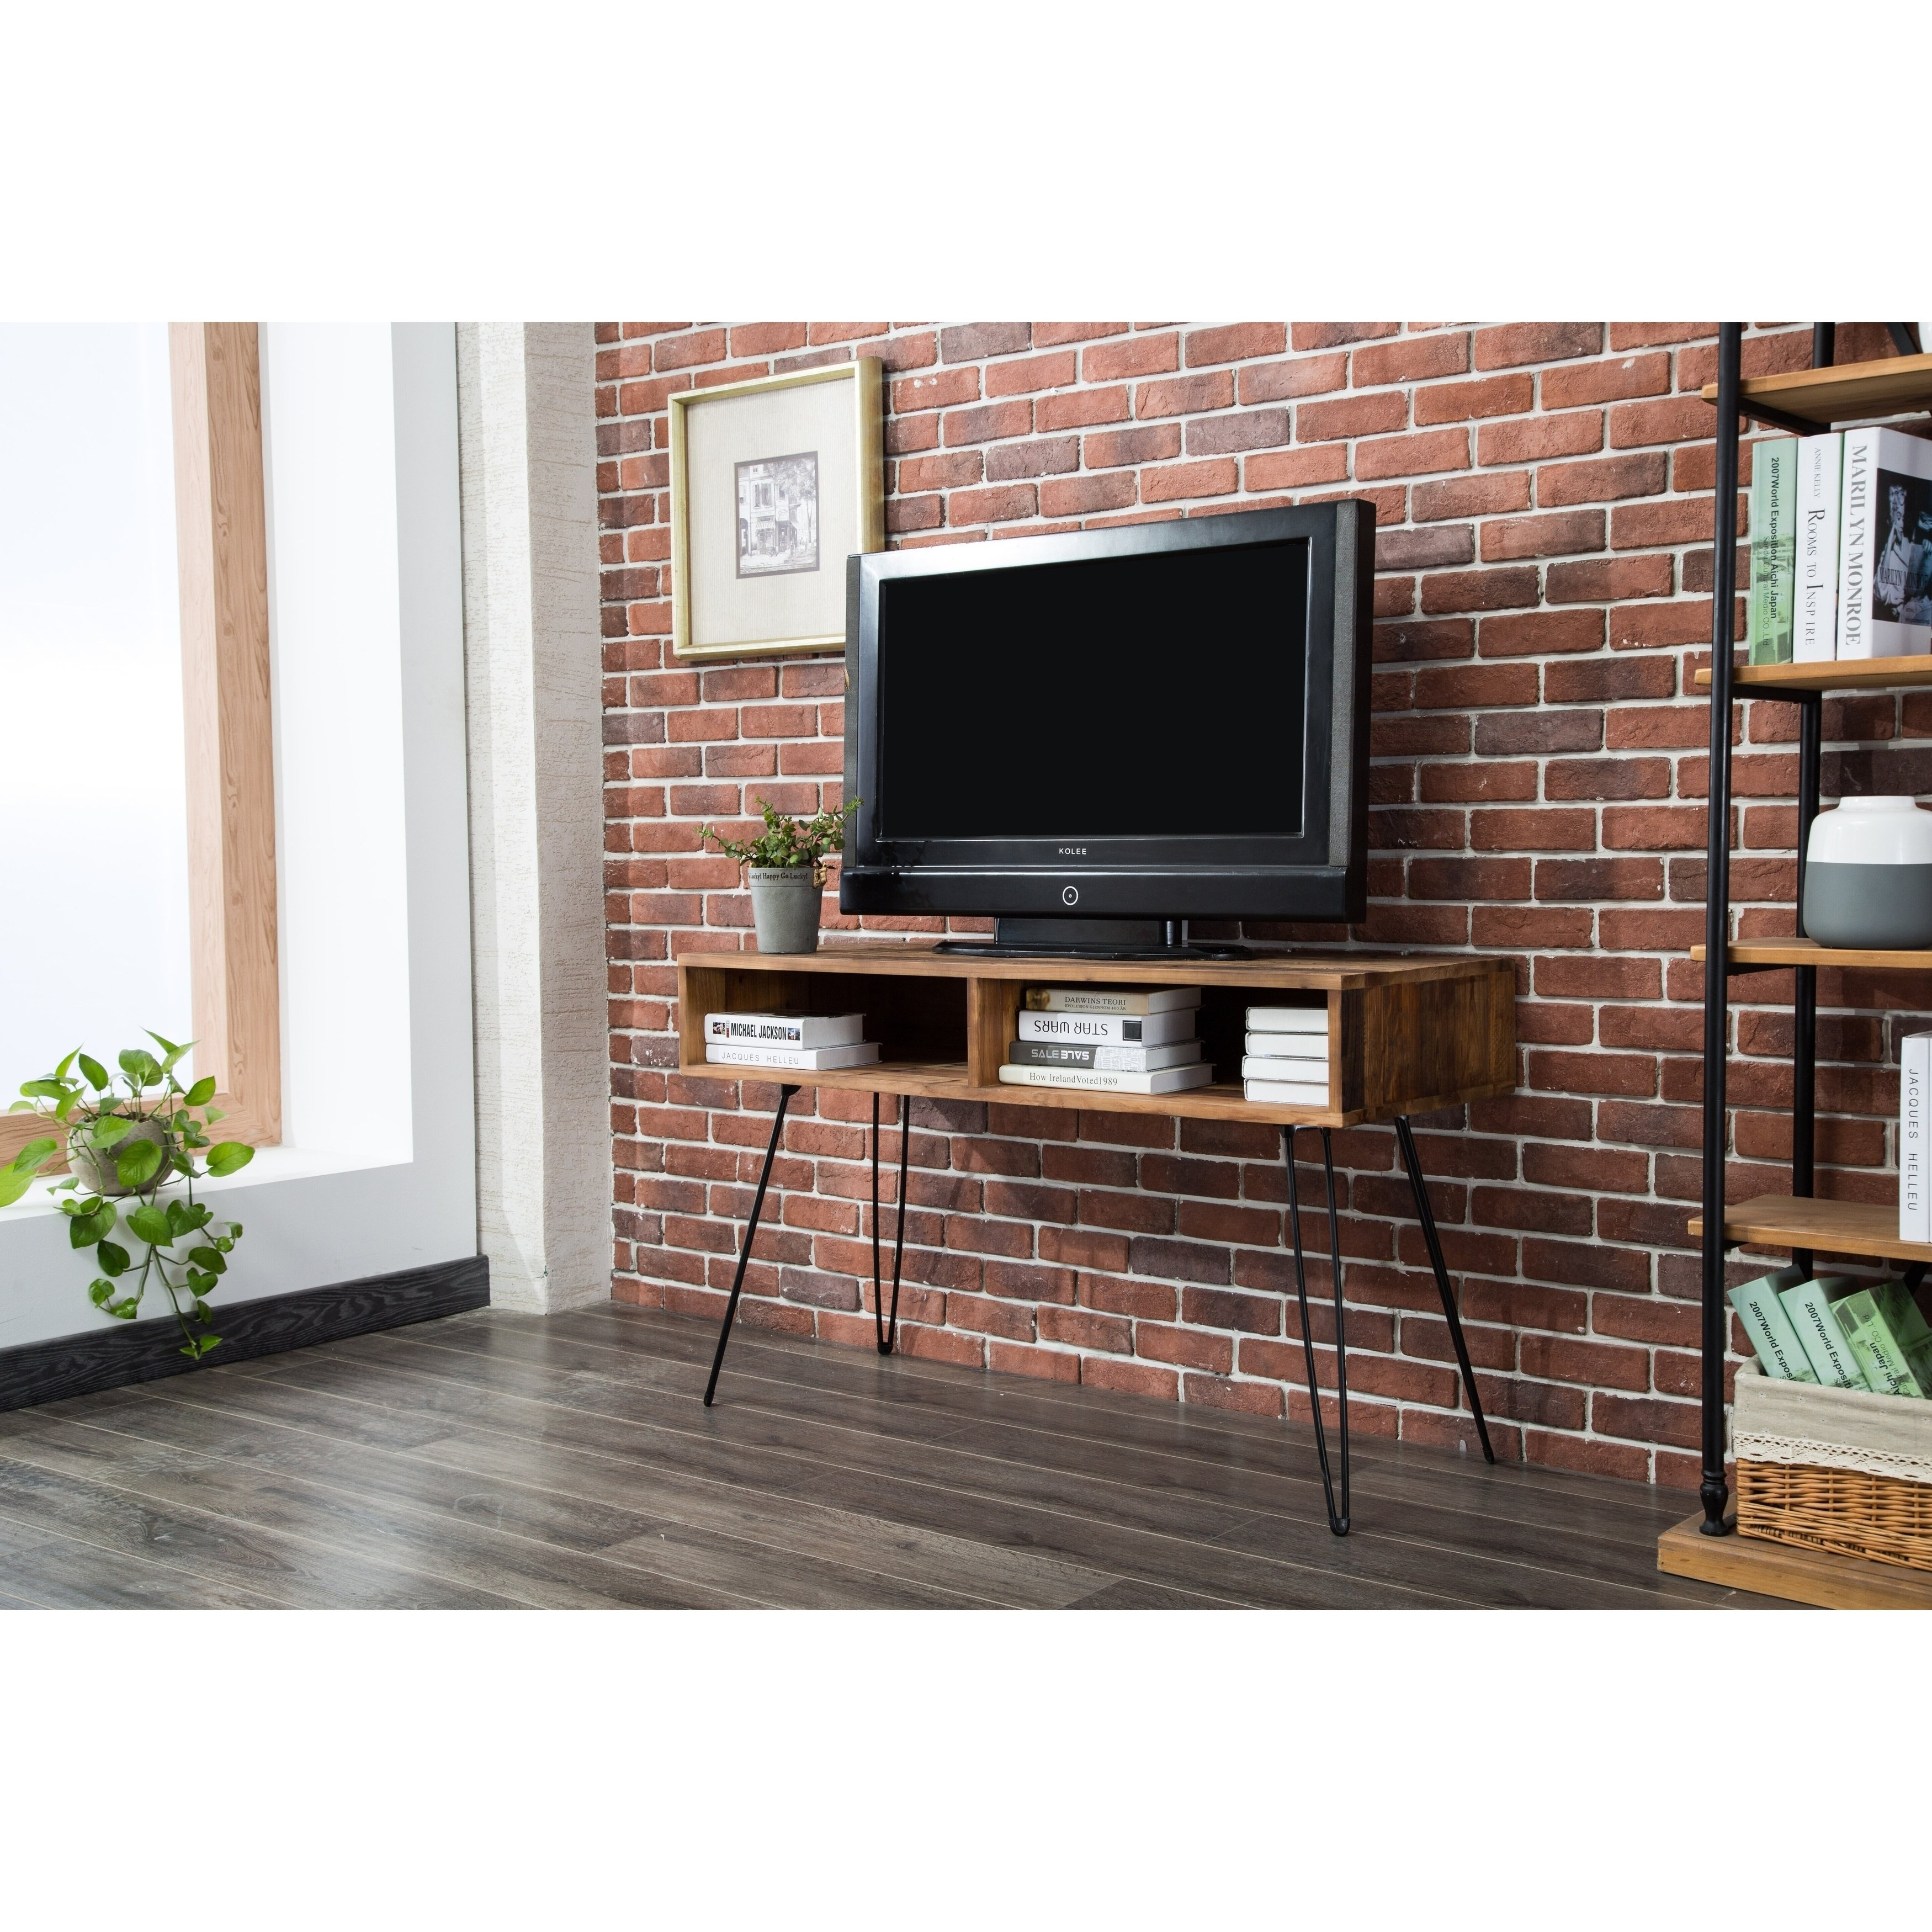 Our best living room furniture deals carbon loft lee reclaimed fir 48 inch tv stand natural wood brown